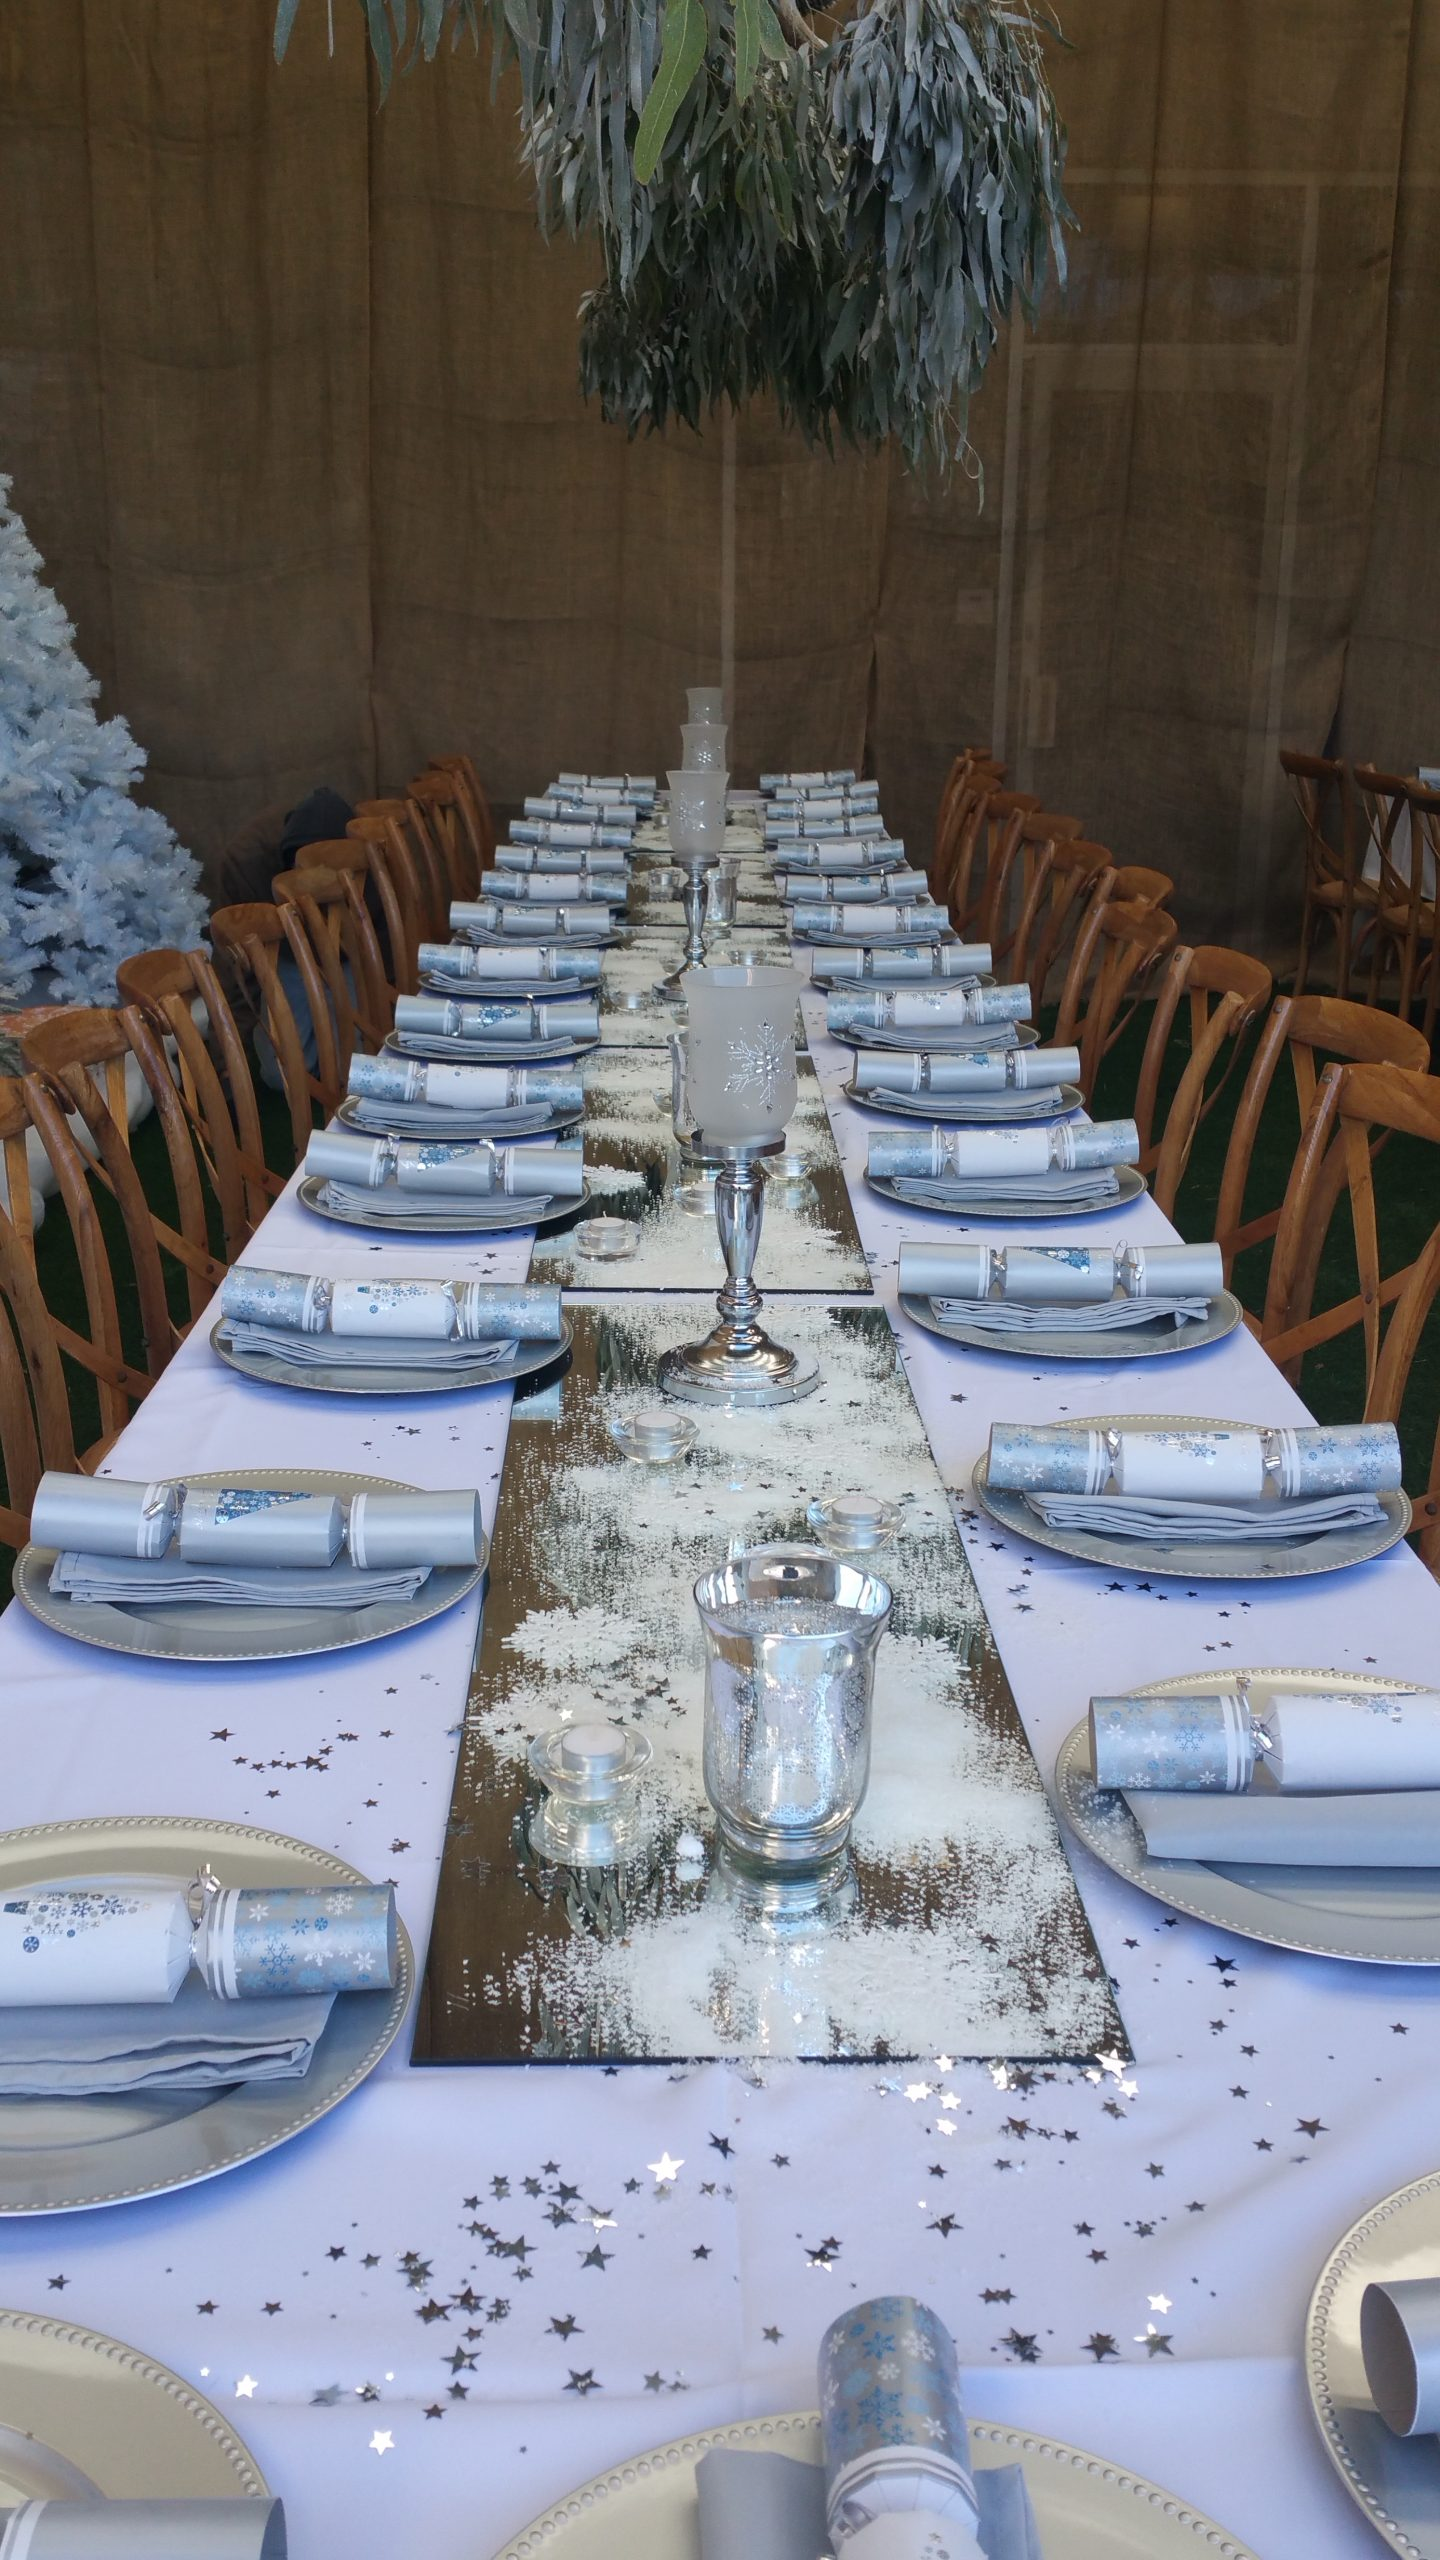 Winter Christmas table is set